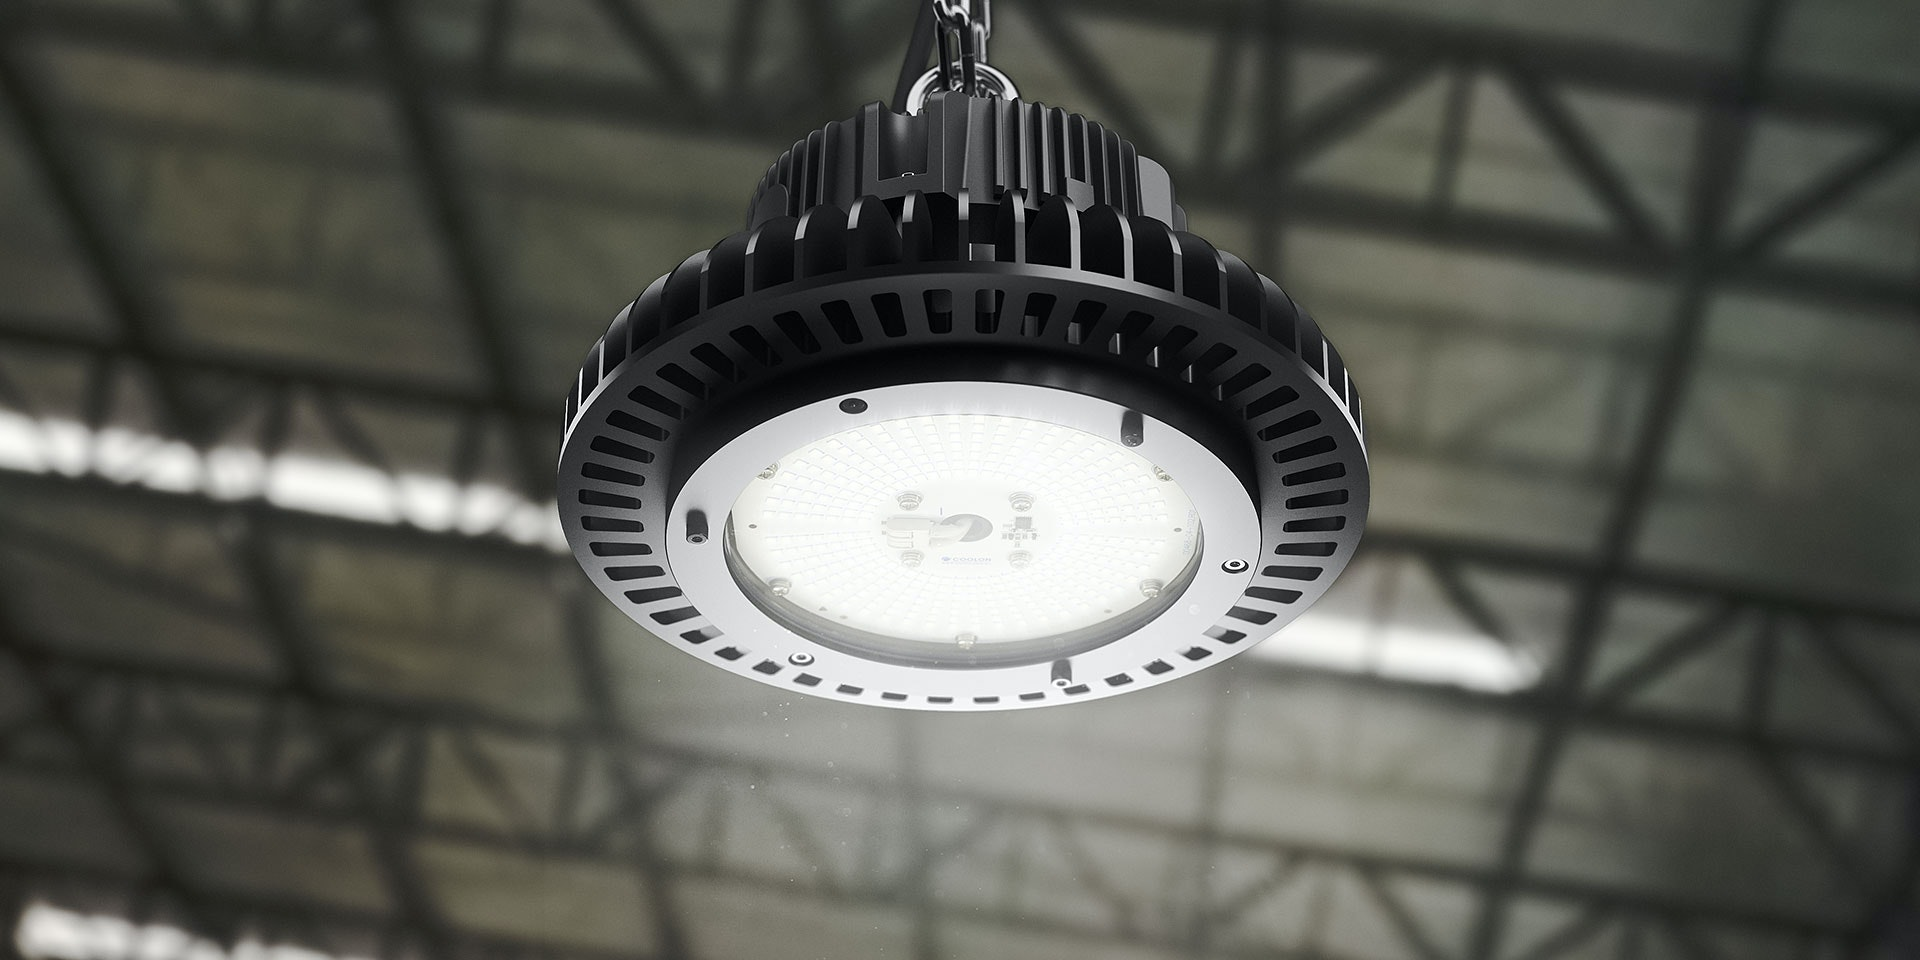 AZIZ LIGHT industrial LED High Bay luminaire in application,installed in a warehouse